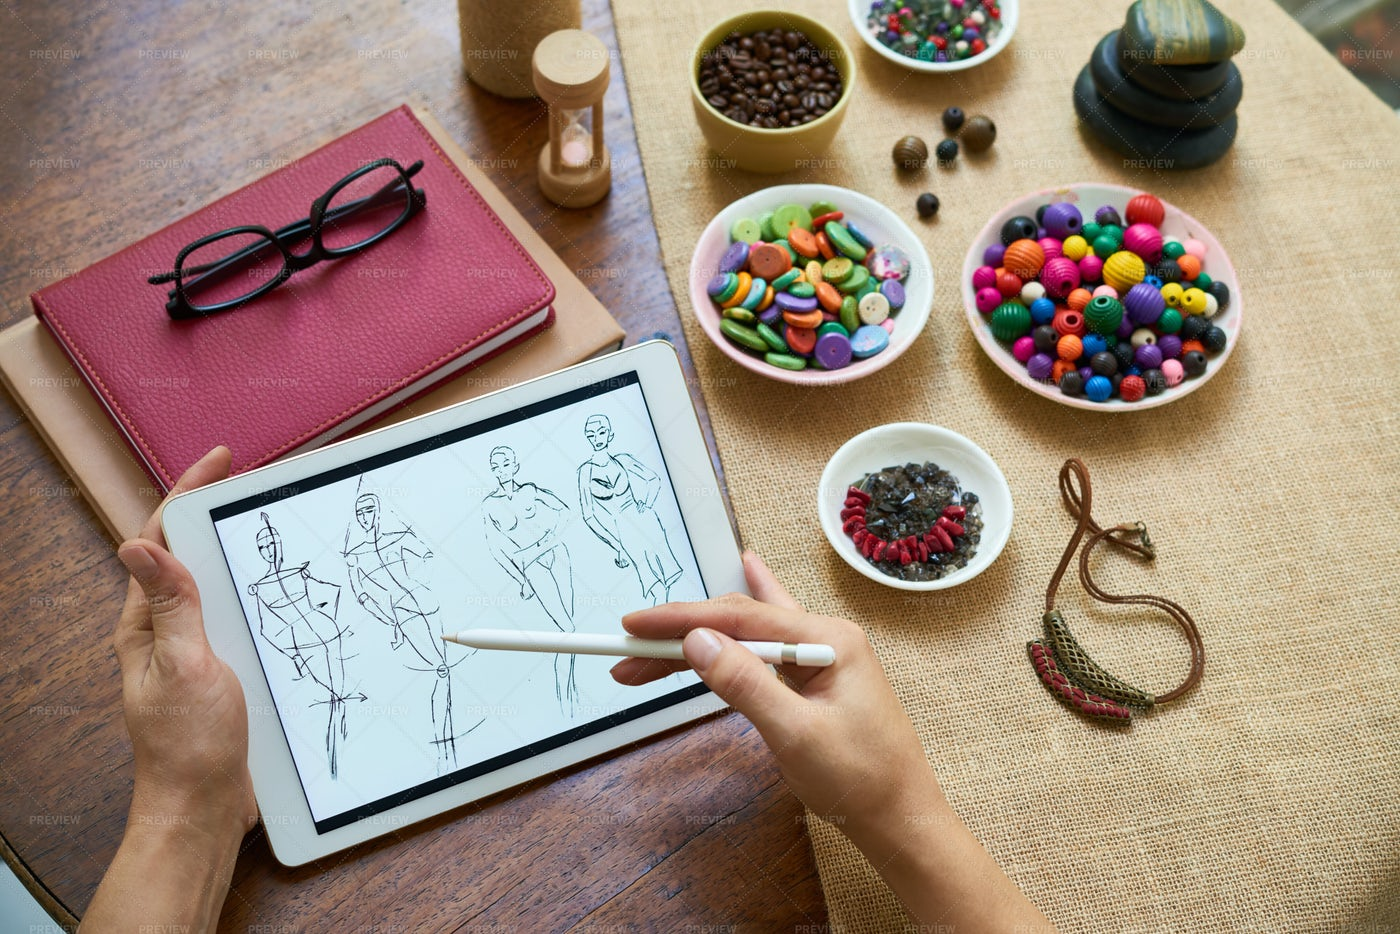 Designer Drawing Sketches On Tablet Pc: Stock Photos